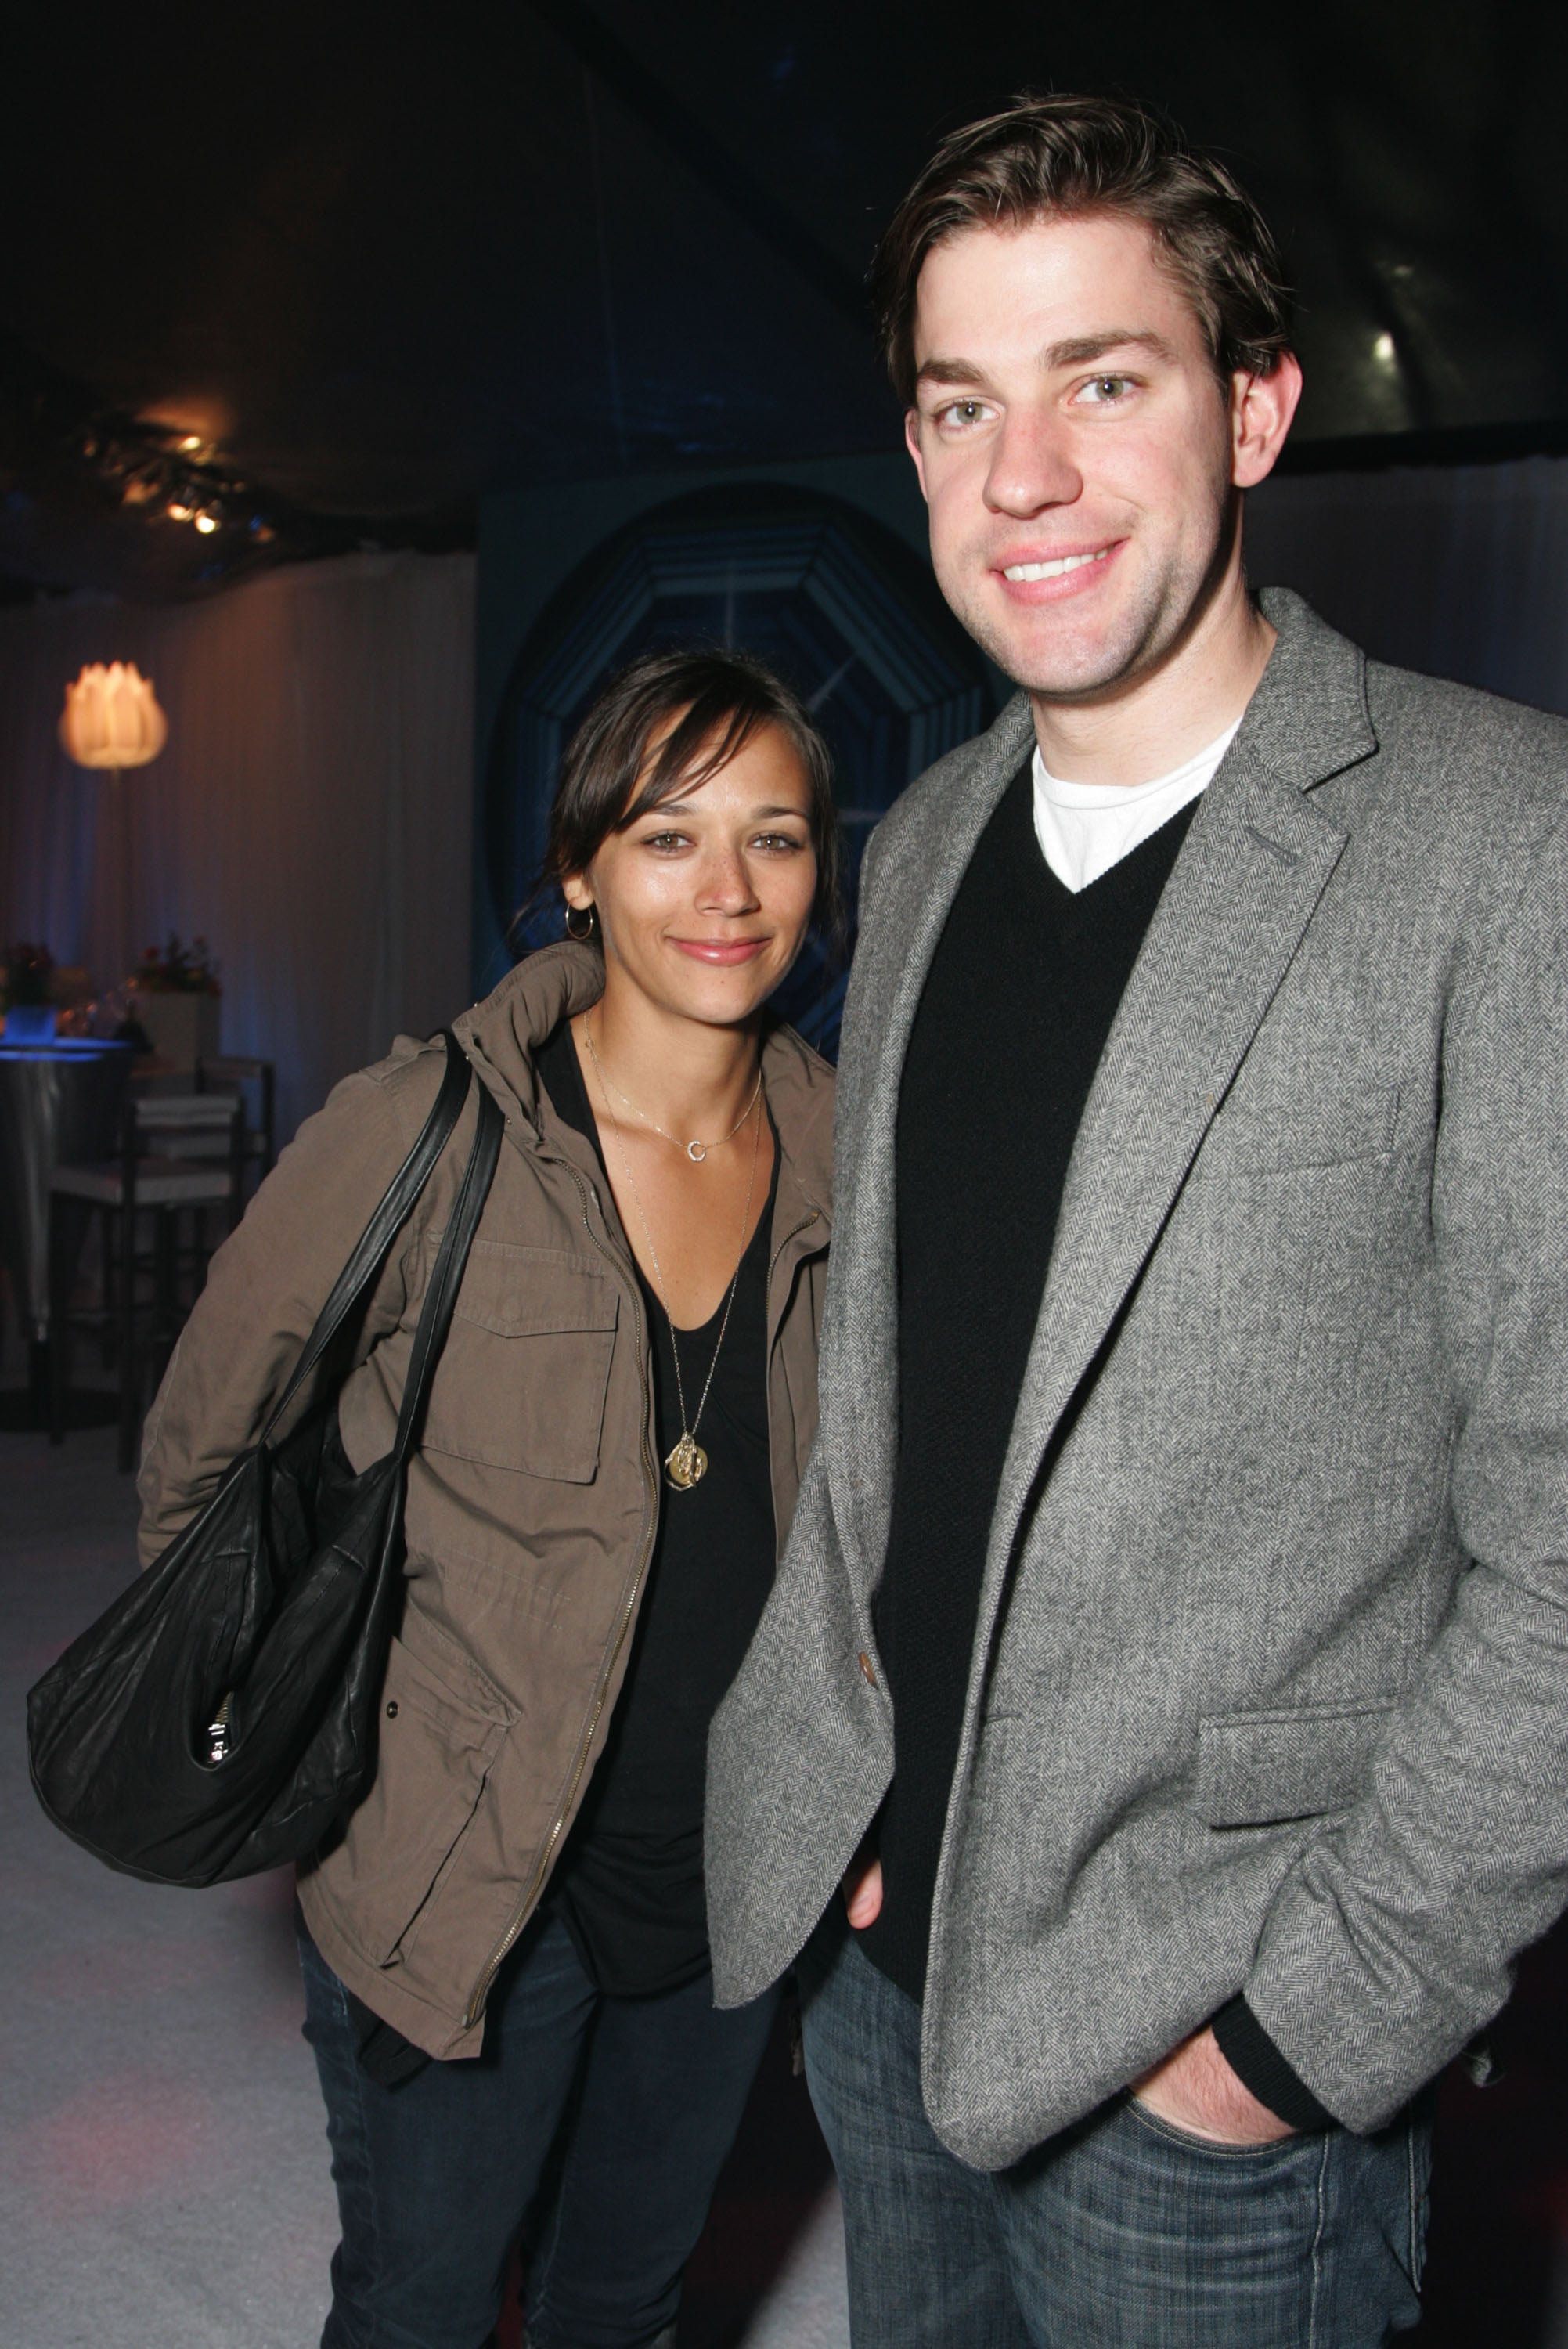 John Krasinski and Rashida Jones | 66 Celebrity Couples ...